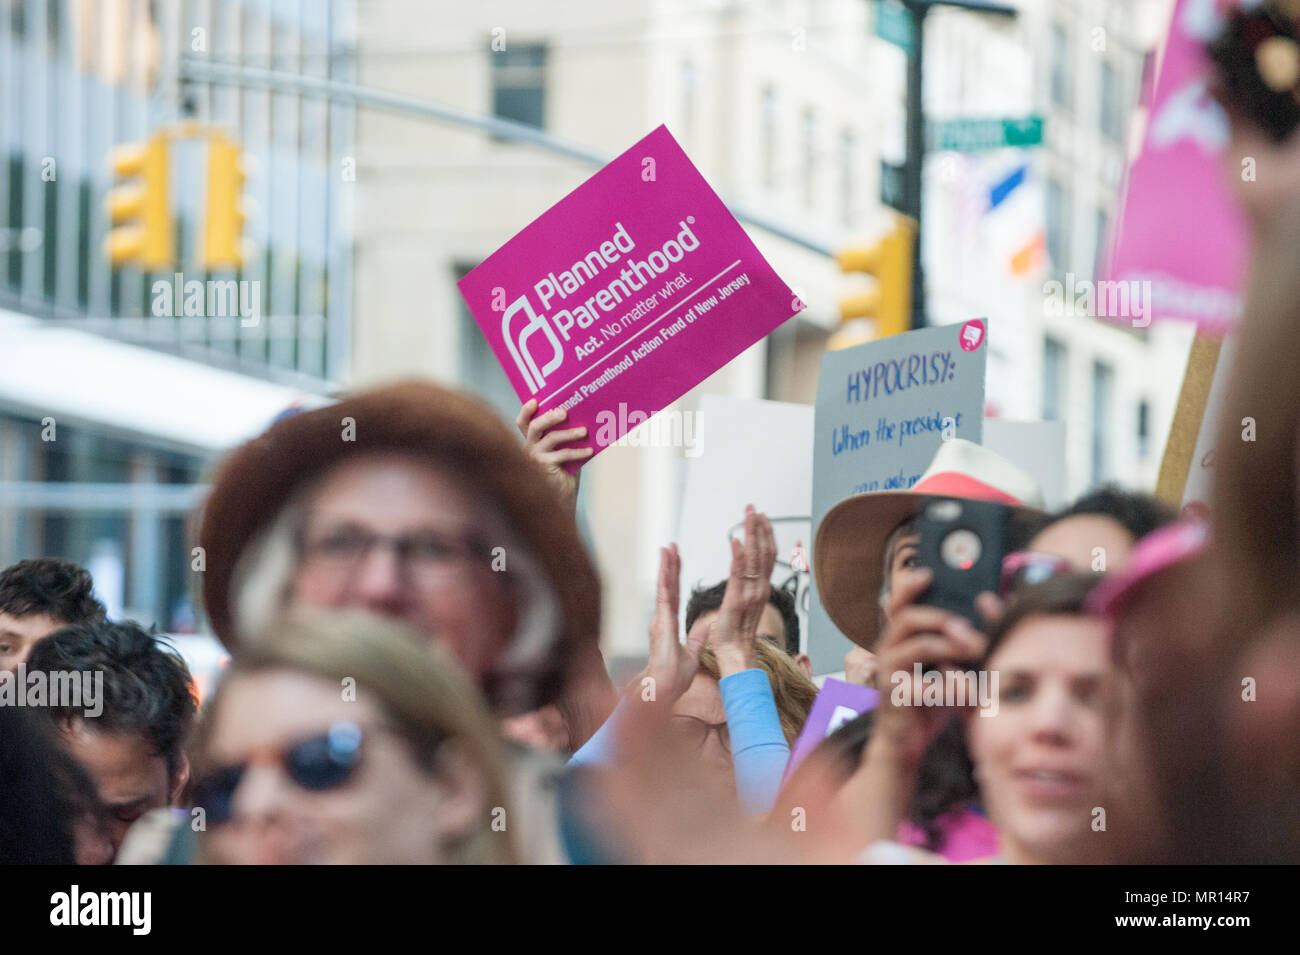 Supporters with protest signs at Title X (Title Ten) gag rule rally in New York City, hosted by Planned Parenthood of New York City on May 24th 2018, reacting the President Trump's attempt to ban Medicaid and federal funding to medical providers who provide full, legal medical information to patients wanting or needing abortion services. - Stock Image